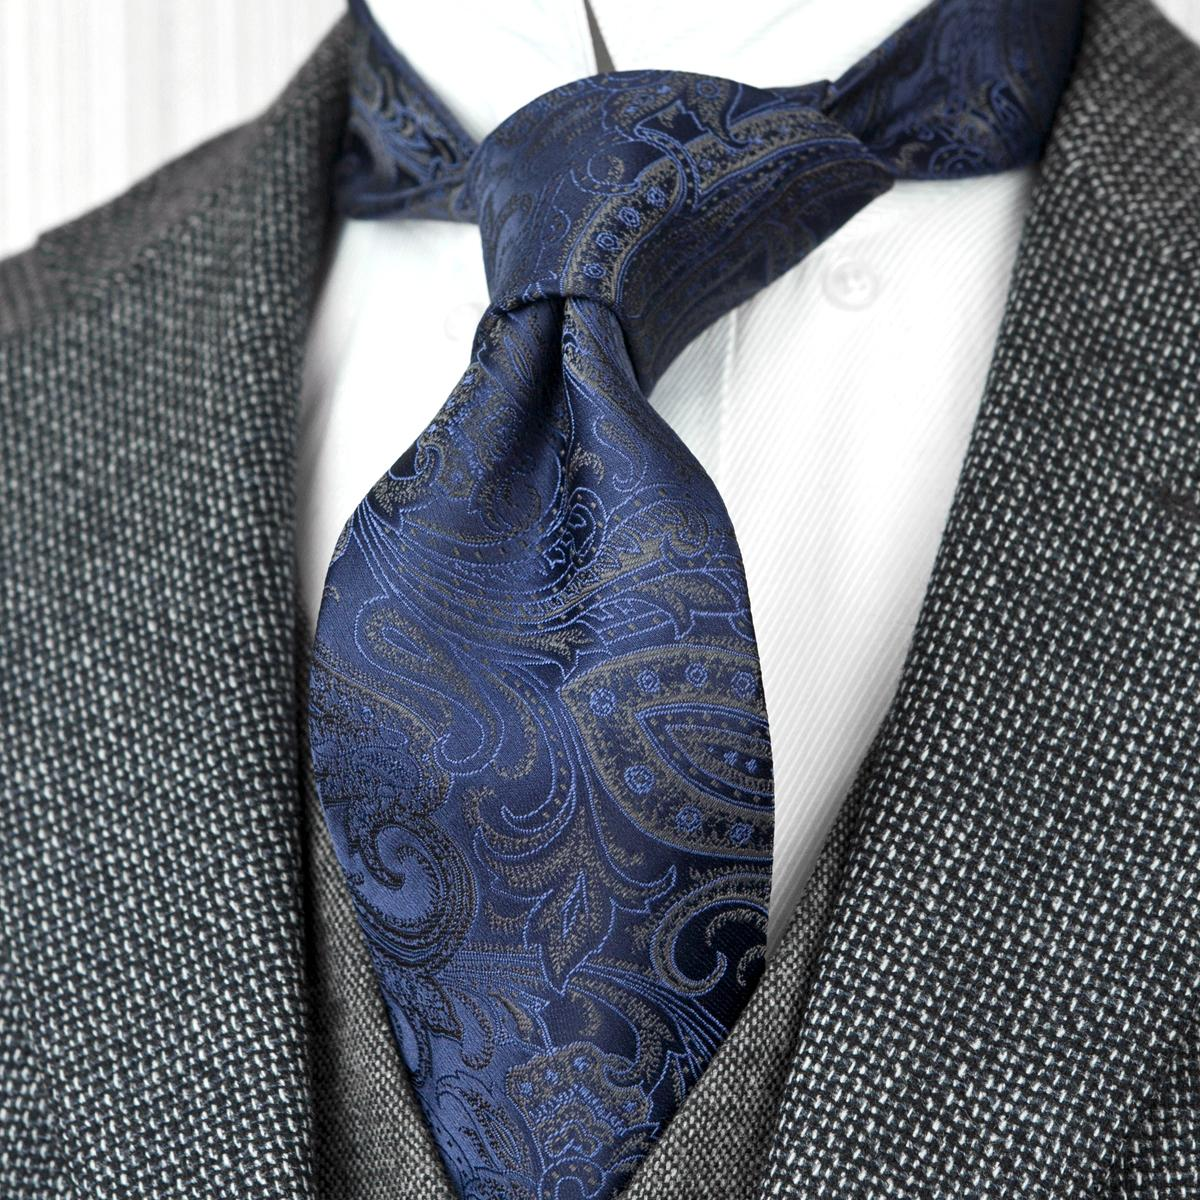 F21 Wholesale Paisley Navy Blue Multicolor Mens Ties Neckties 100% Silk Jacquard Woven Suit Gift For Men Attractive Acceossories